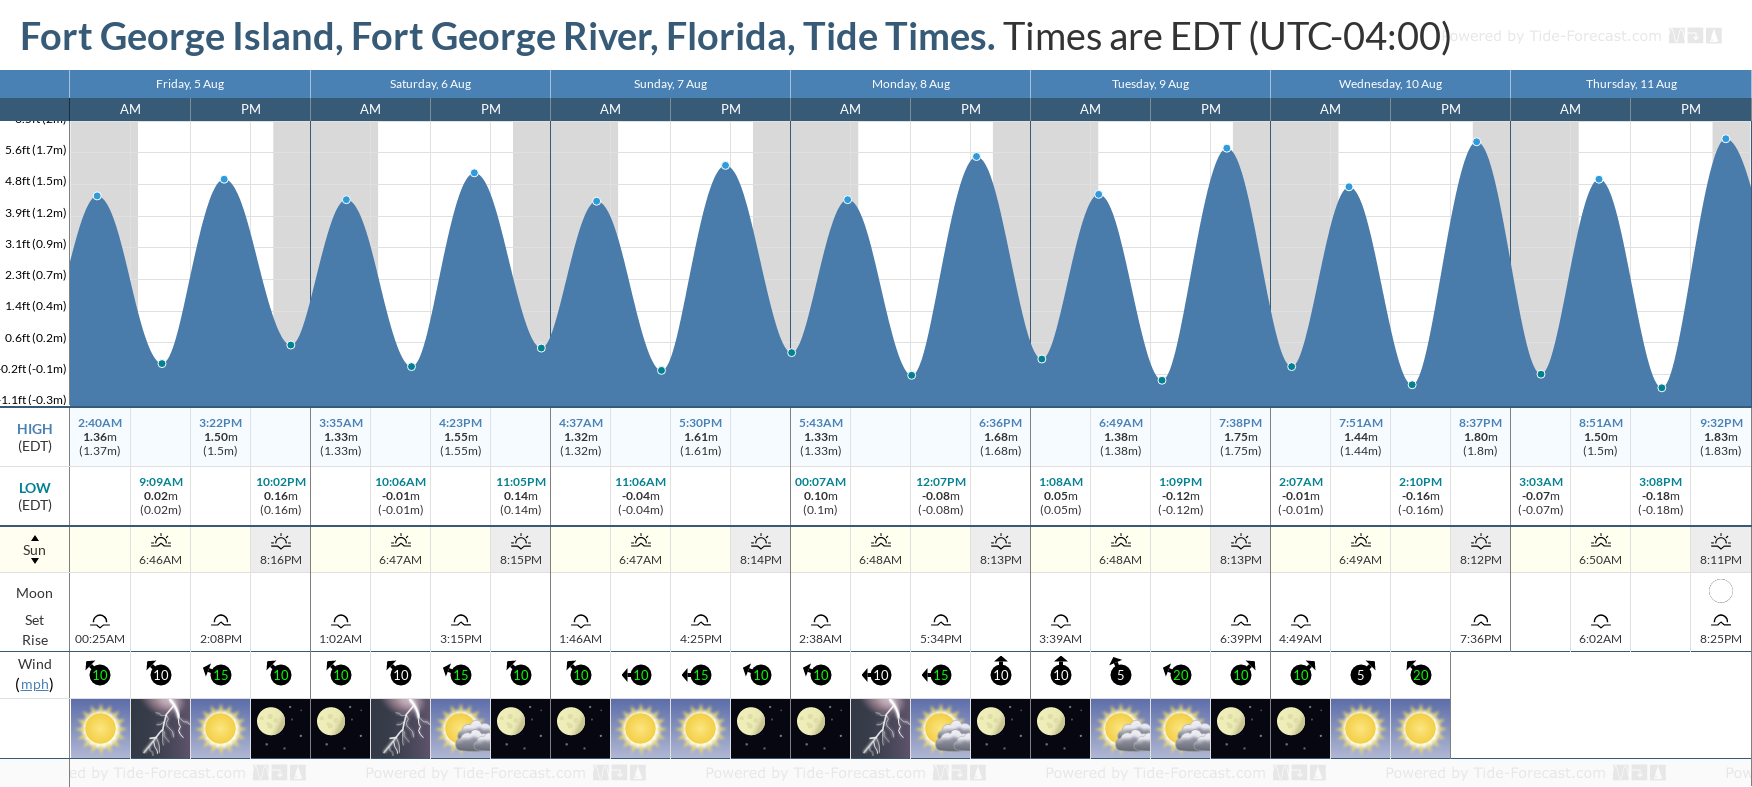 Fort George Island, Fort George River, Florida Tide Chart including high and low tide tide times for the next 7 days